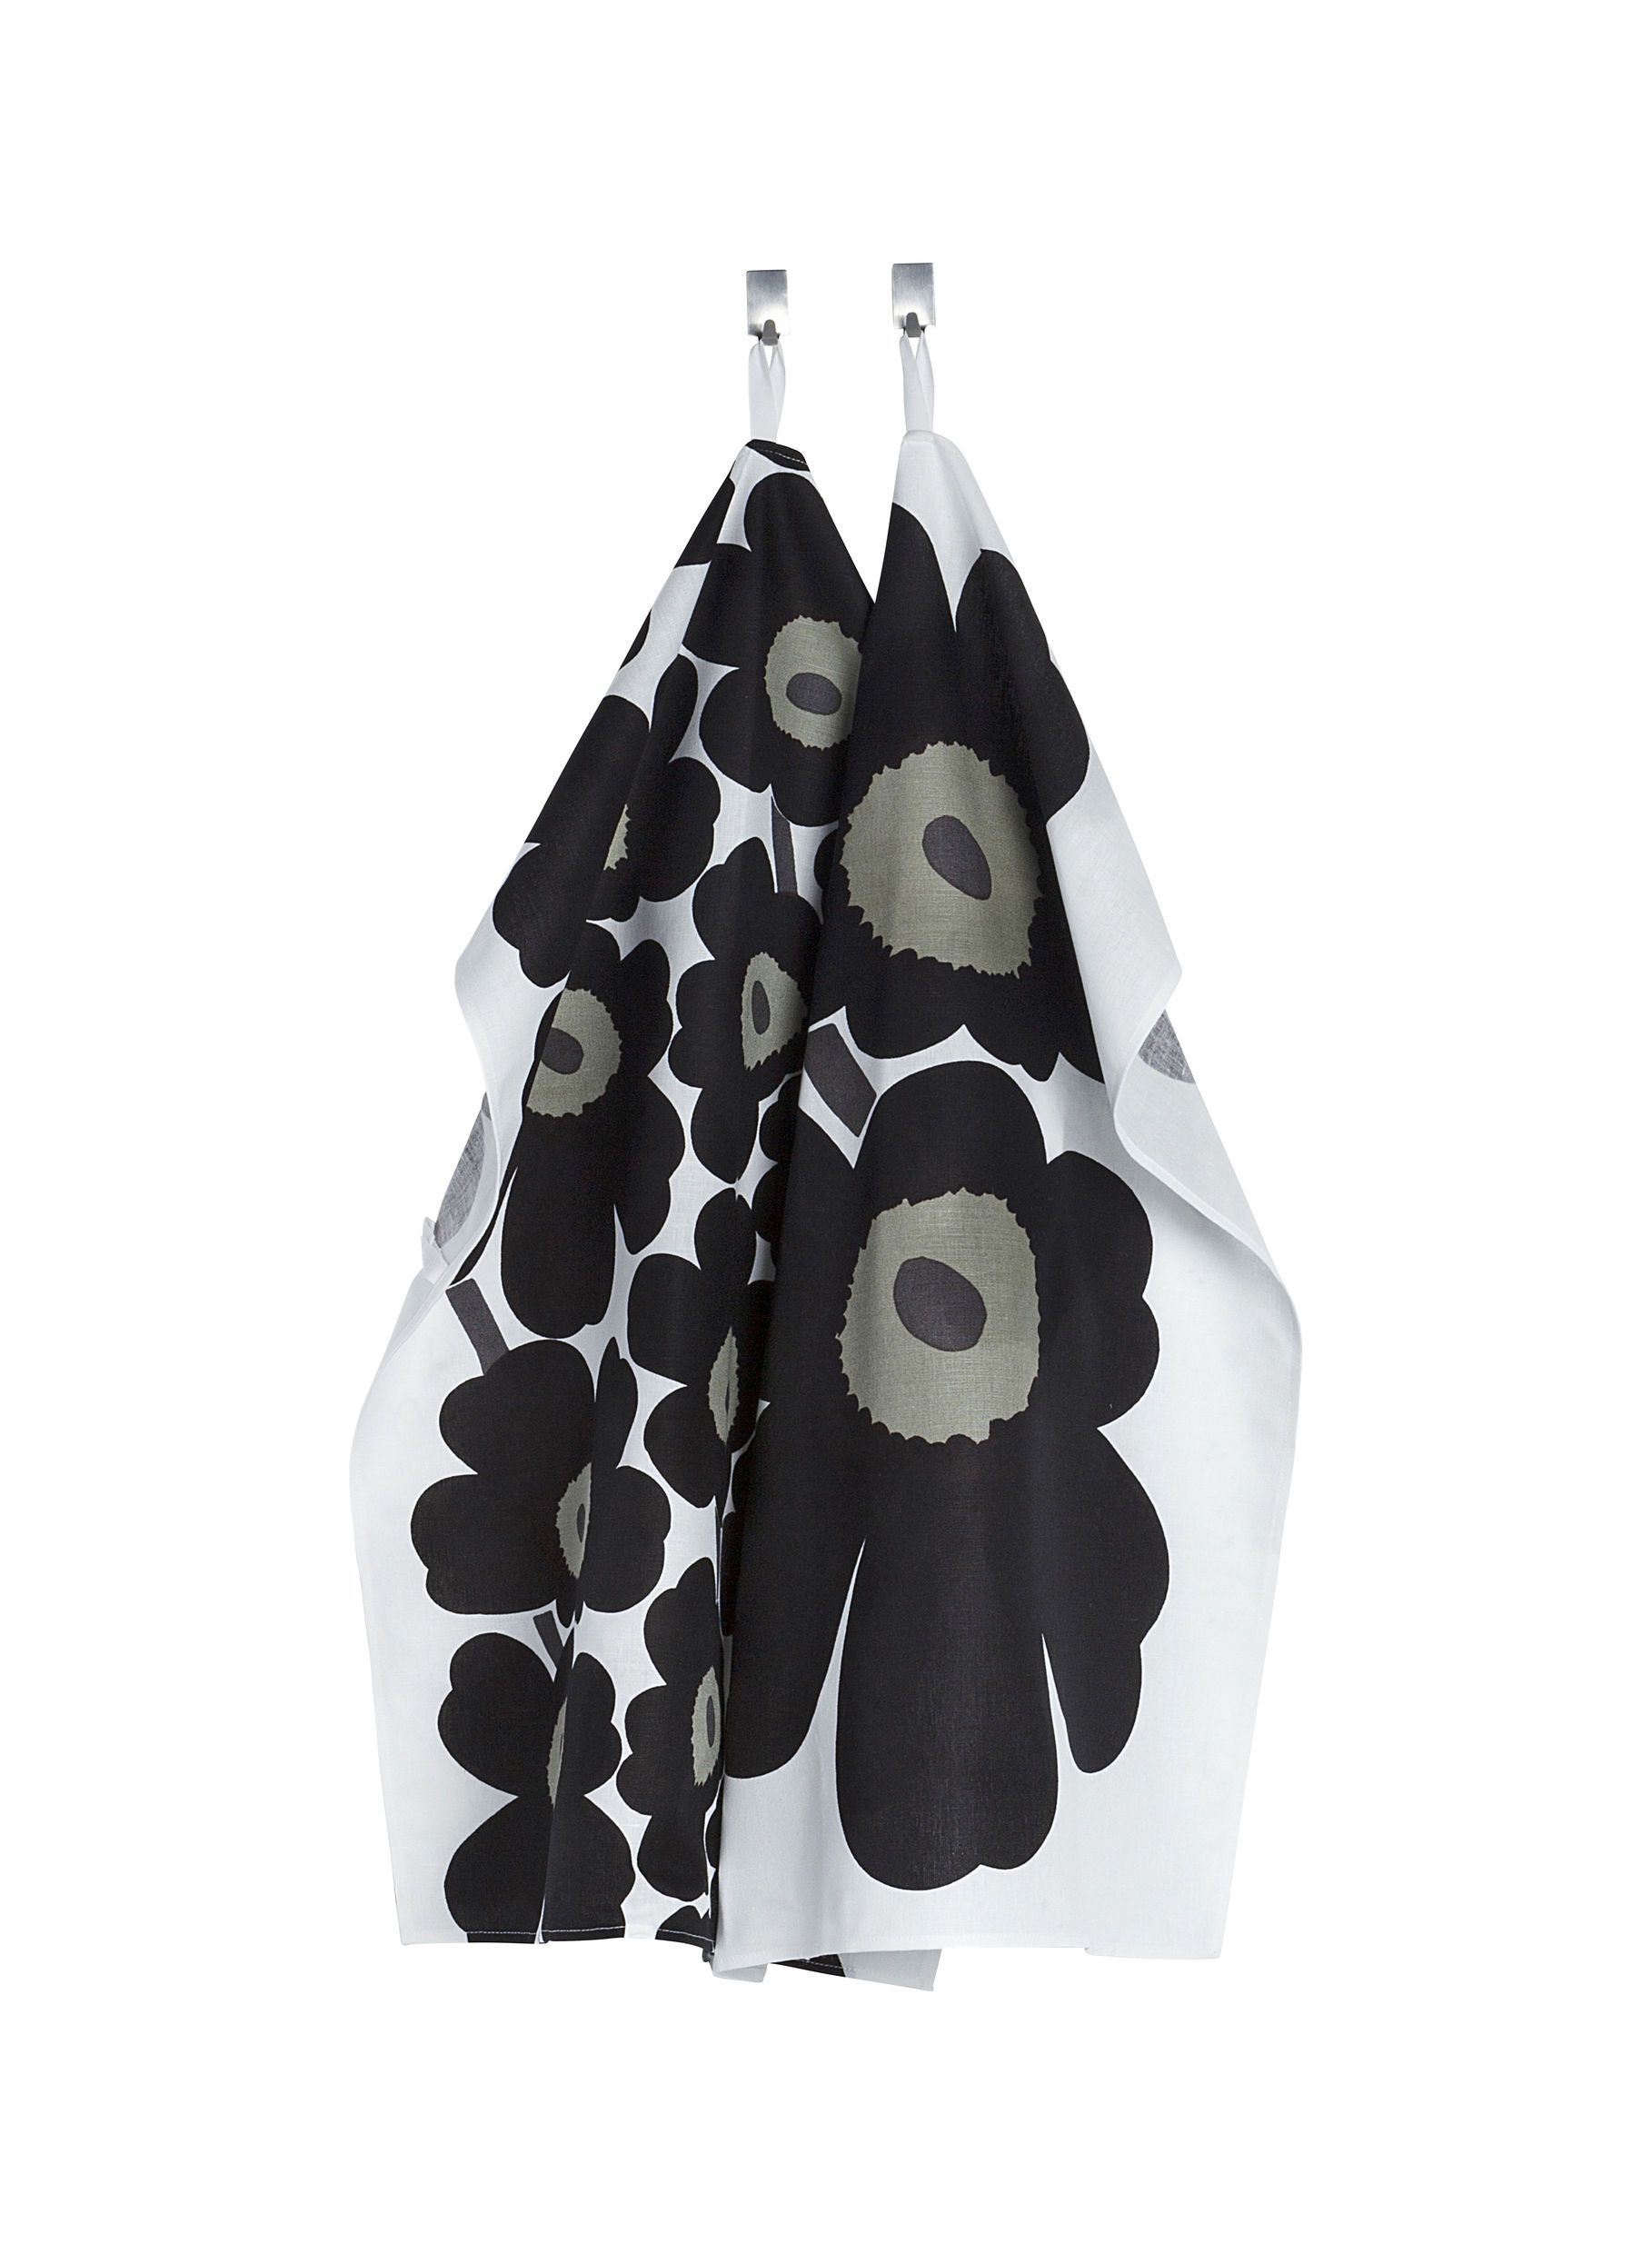 Marimekko, Unikko Tea Towel Set, White/Black- Placewares